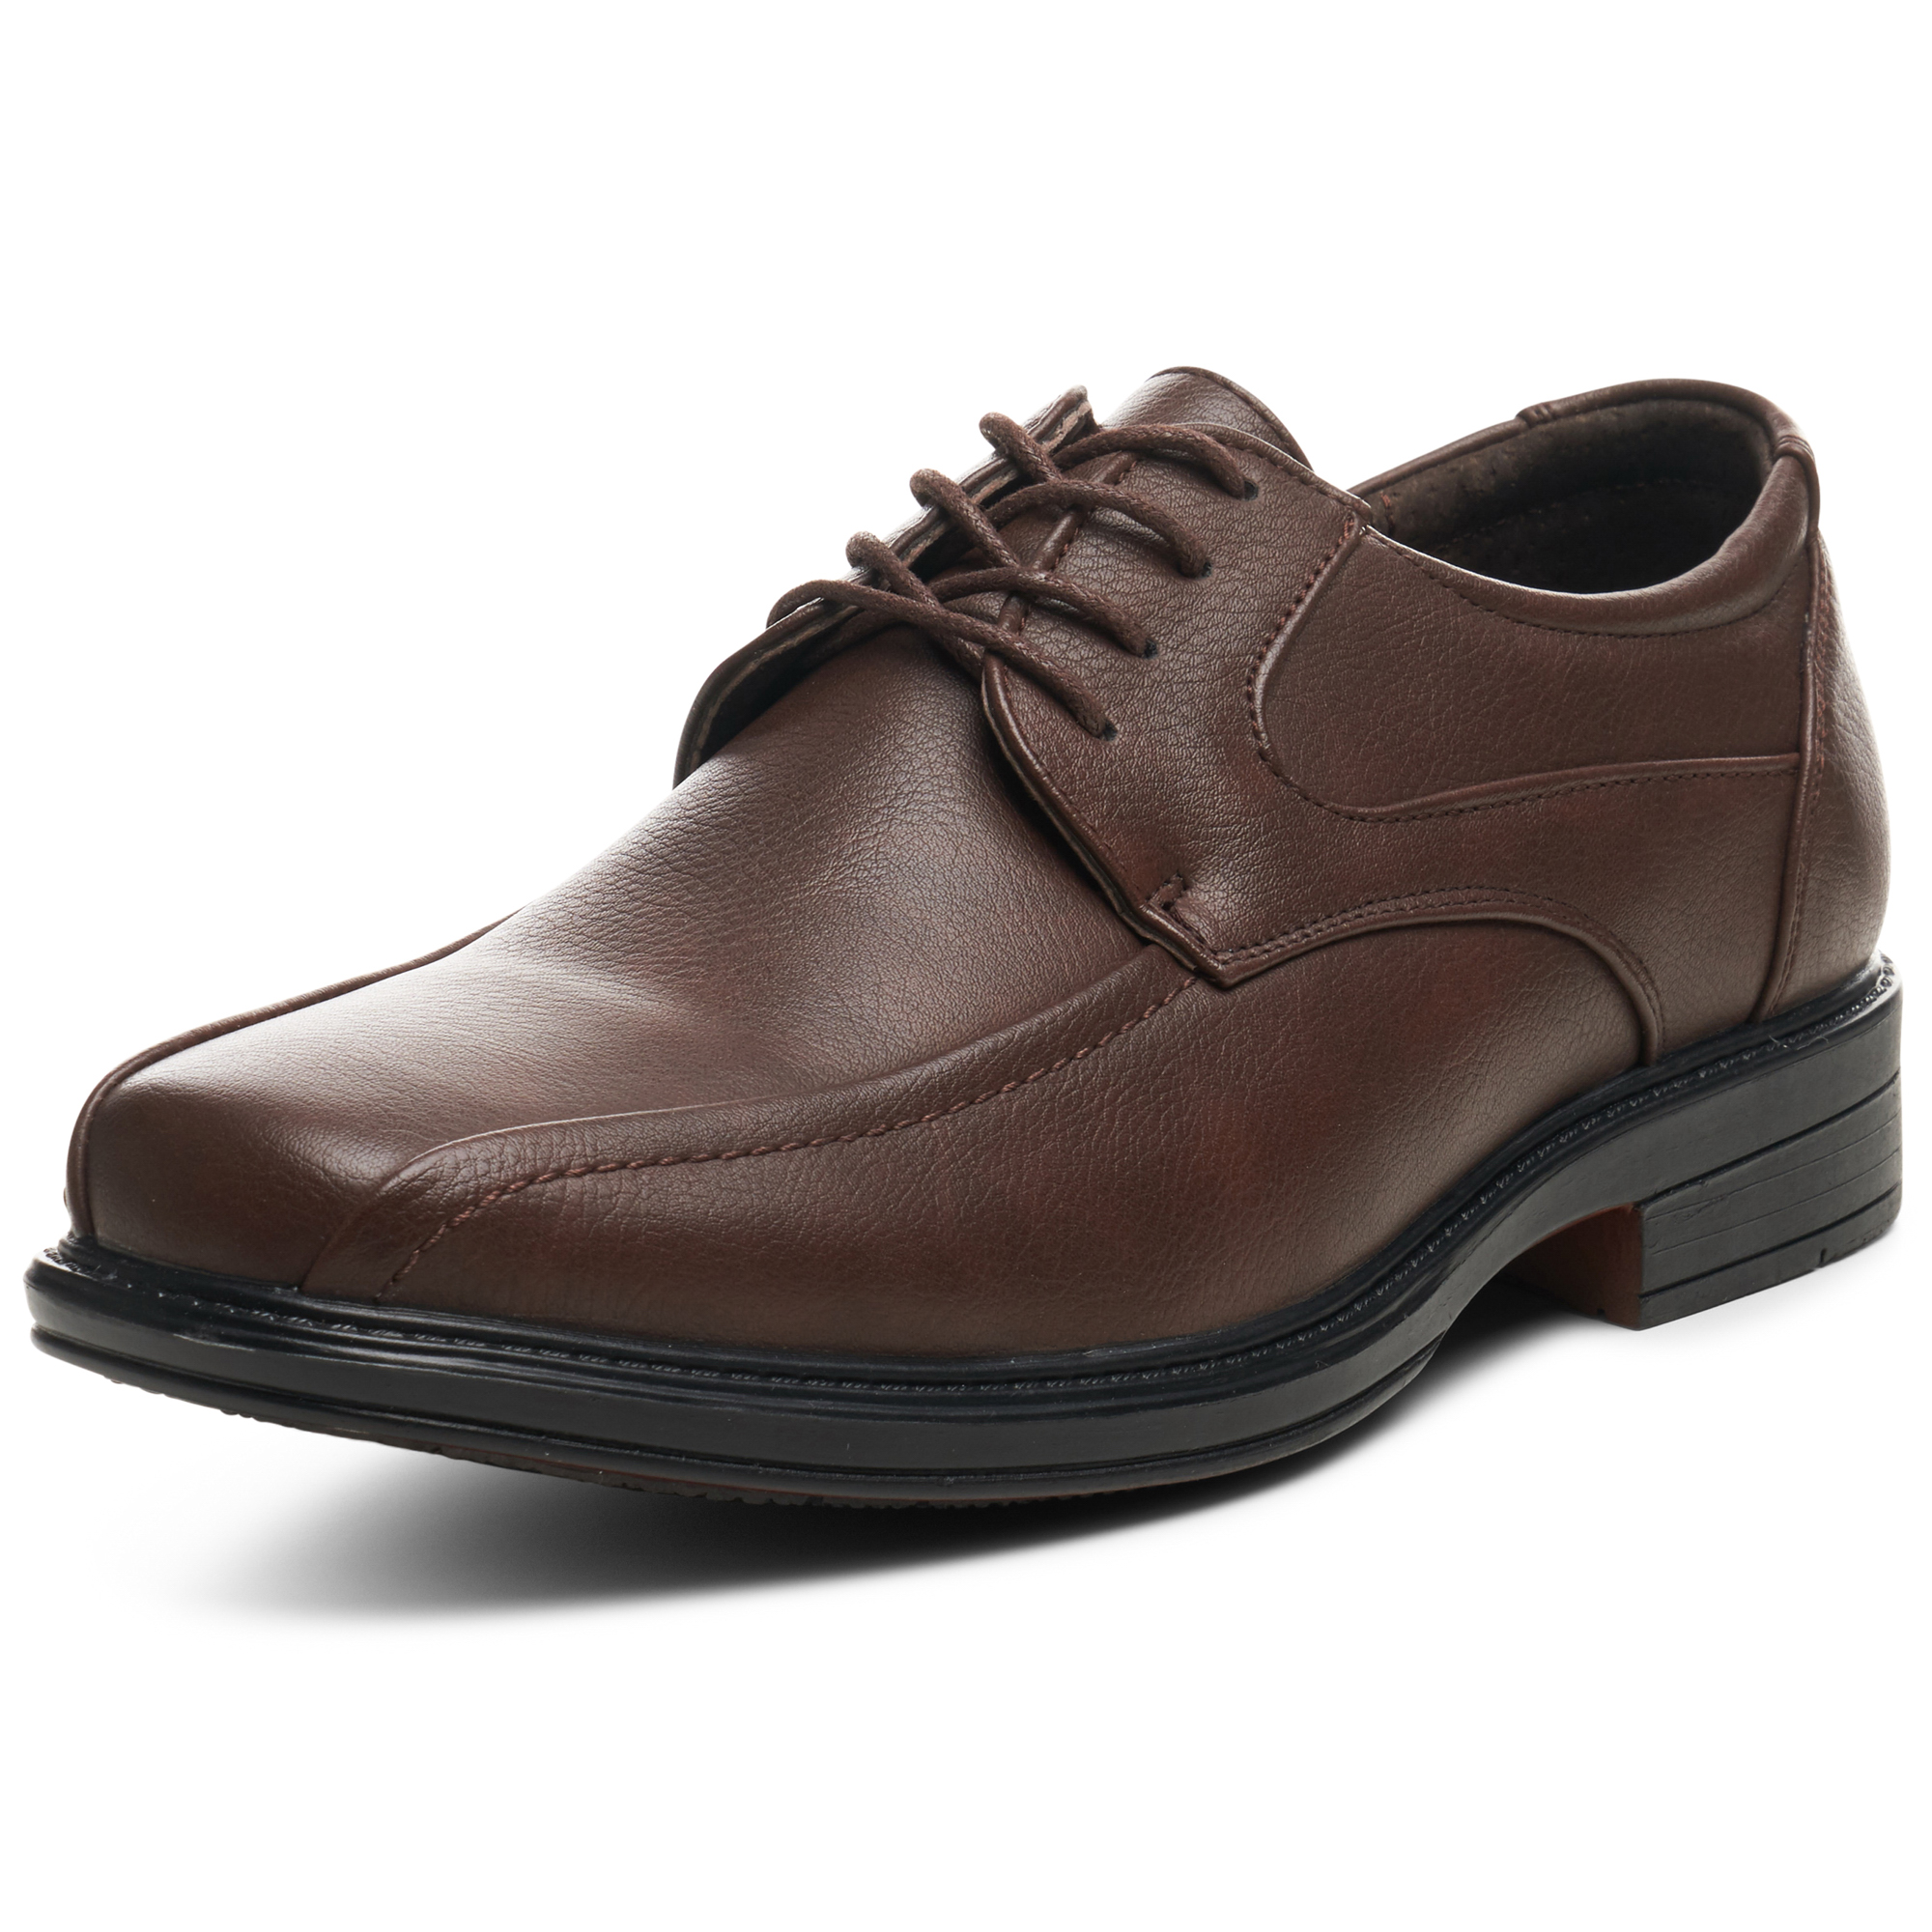 Alpine Swiss Mens Dress Shoes Brown Leather Lined Lace up Oxfords Size 10